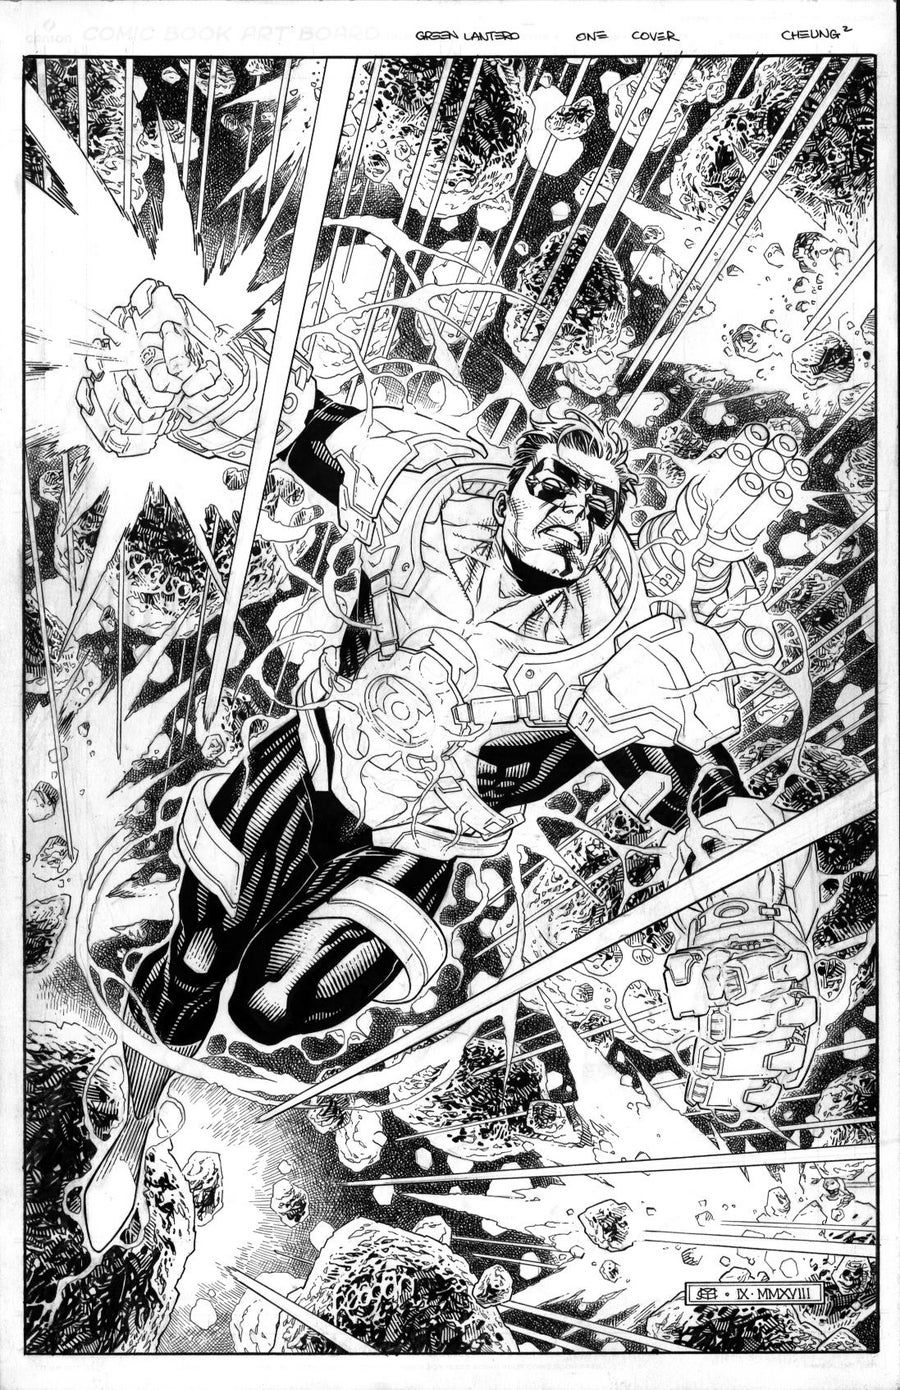 Image of GREEN LANTERN #1 - Variant Cover